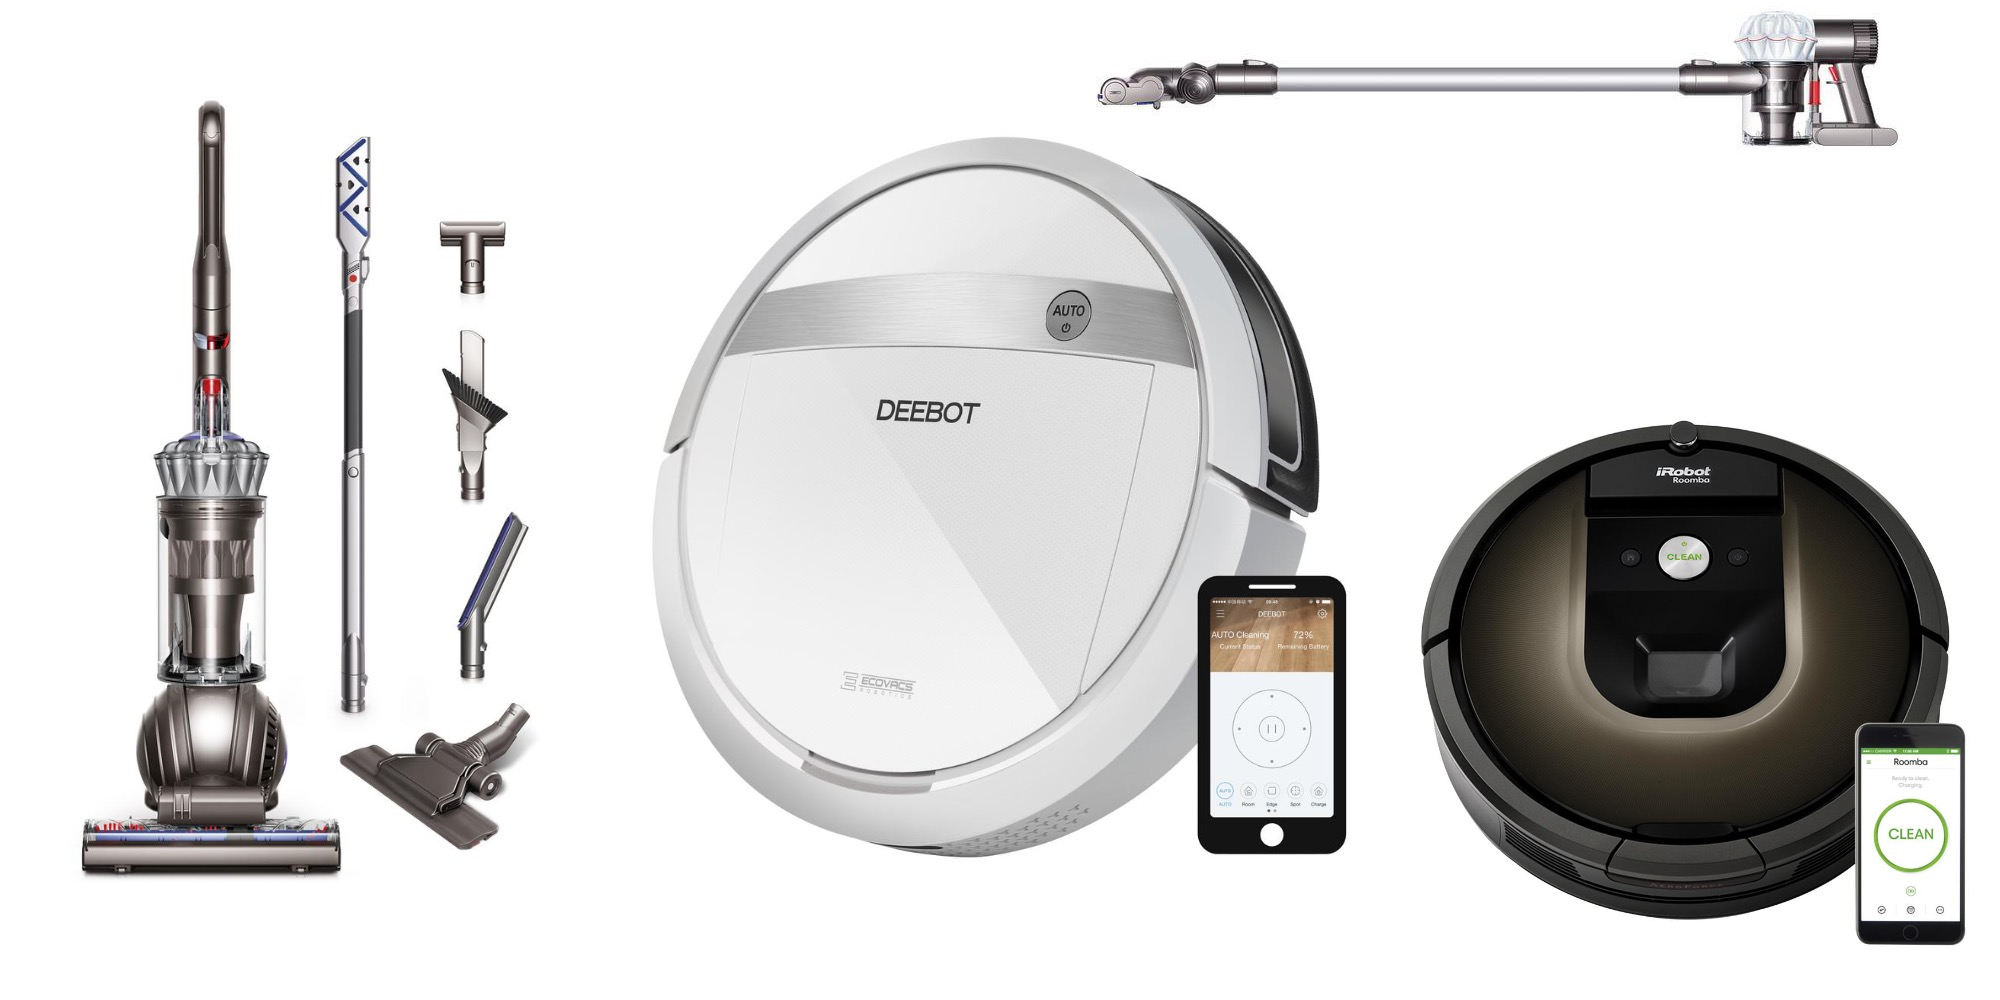 Home Depot offers ECOVACS' Robot Vacuum/Mop for $229 (Reg. $300), Dyson V6 $198, more